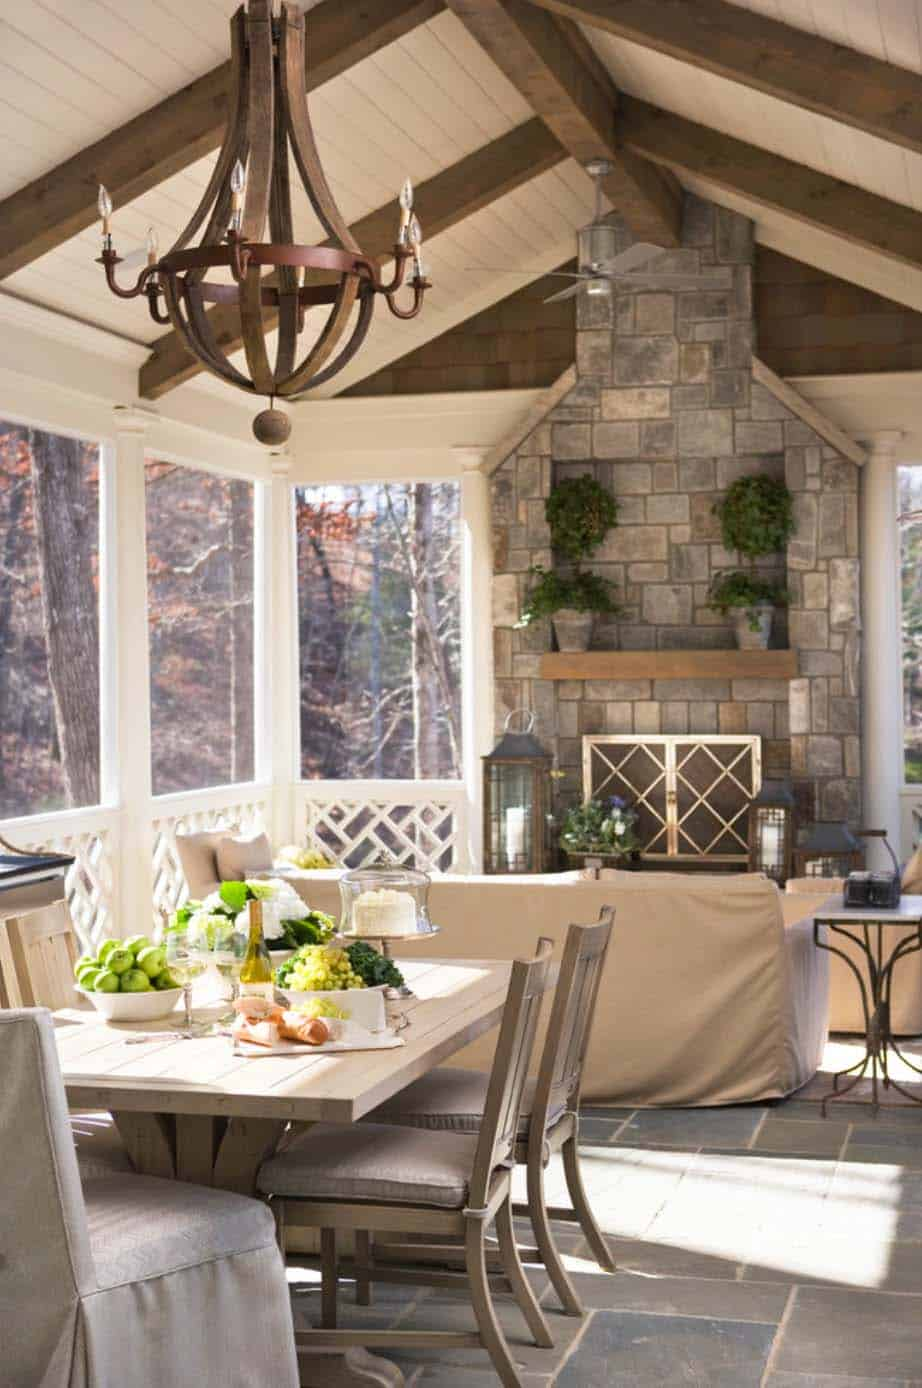 Shingle Style Cottage-Linda McDougald Design-06-1 Kindesign